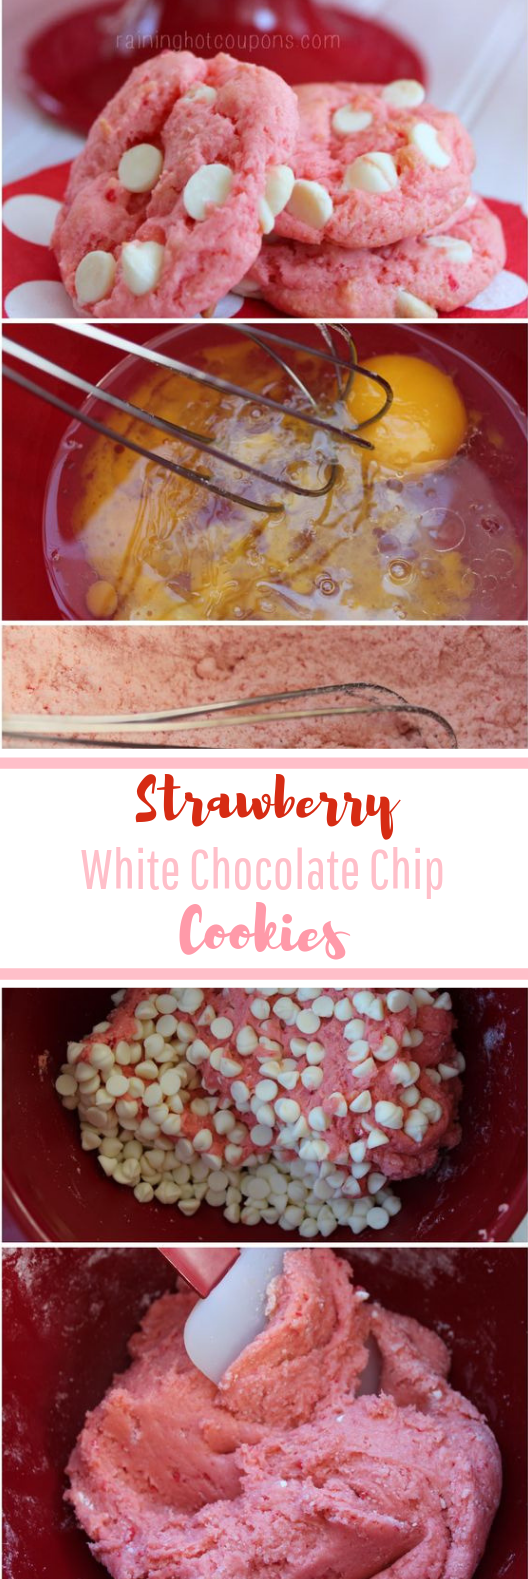 Strawberry White Chocolate Chip Cookies #pink #desserts